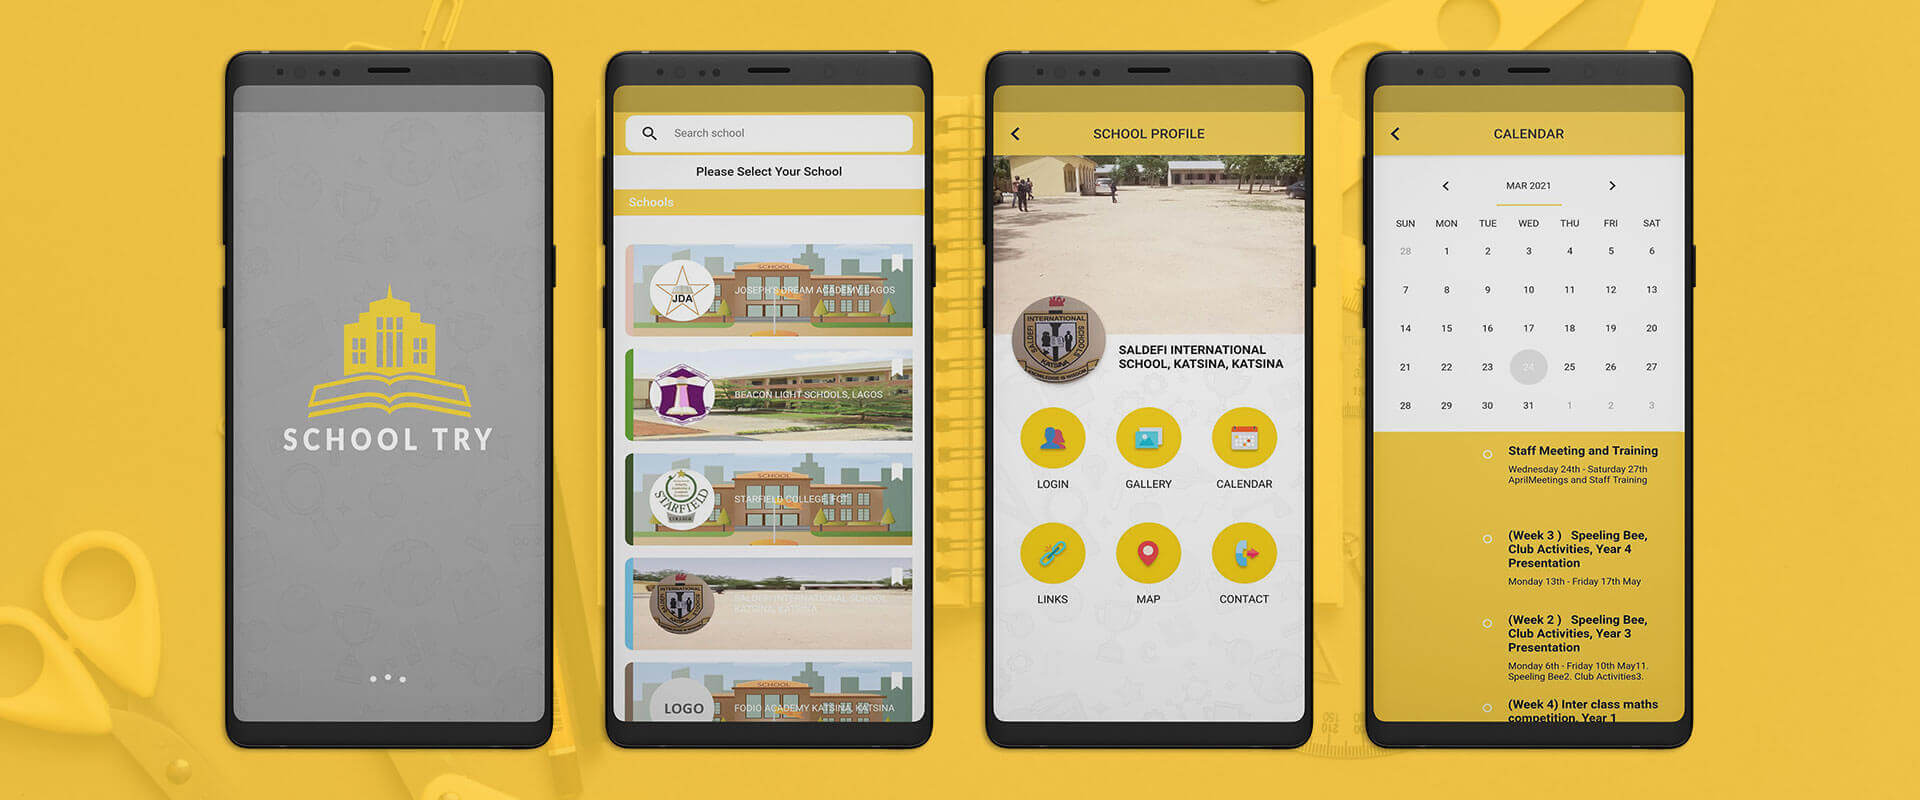 schoolTry android app design